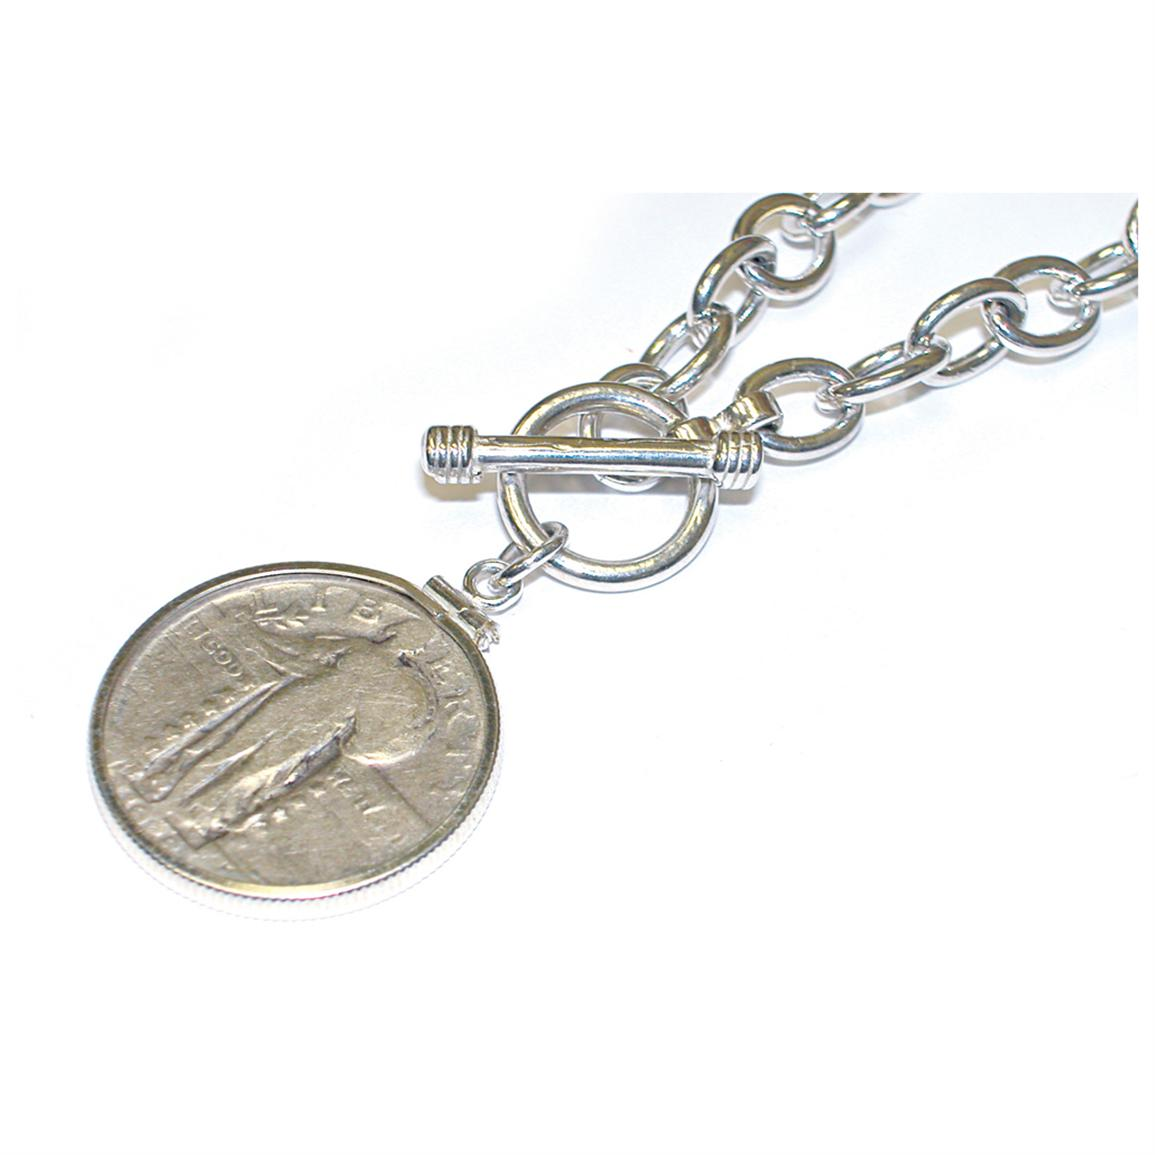 Sterling Silver Toggle Bracelet with Standing Liberty Silver Quarter from Unified Precious Metals